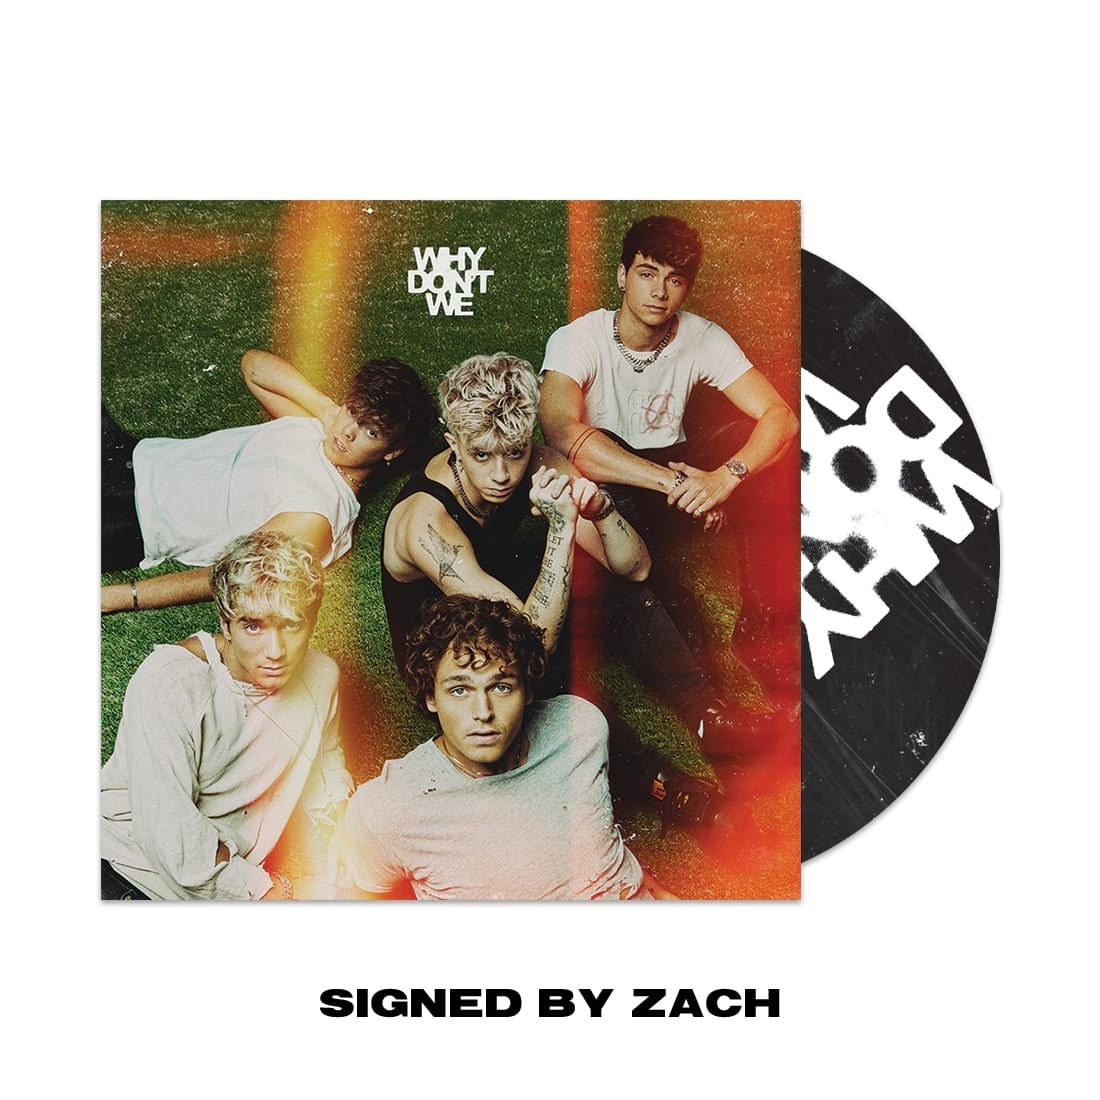 Why Don't We - The Good Times And The Bad Ones [CD] [SIGNED BY ZACH HERRON]